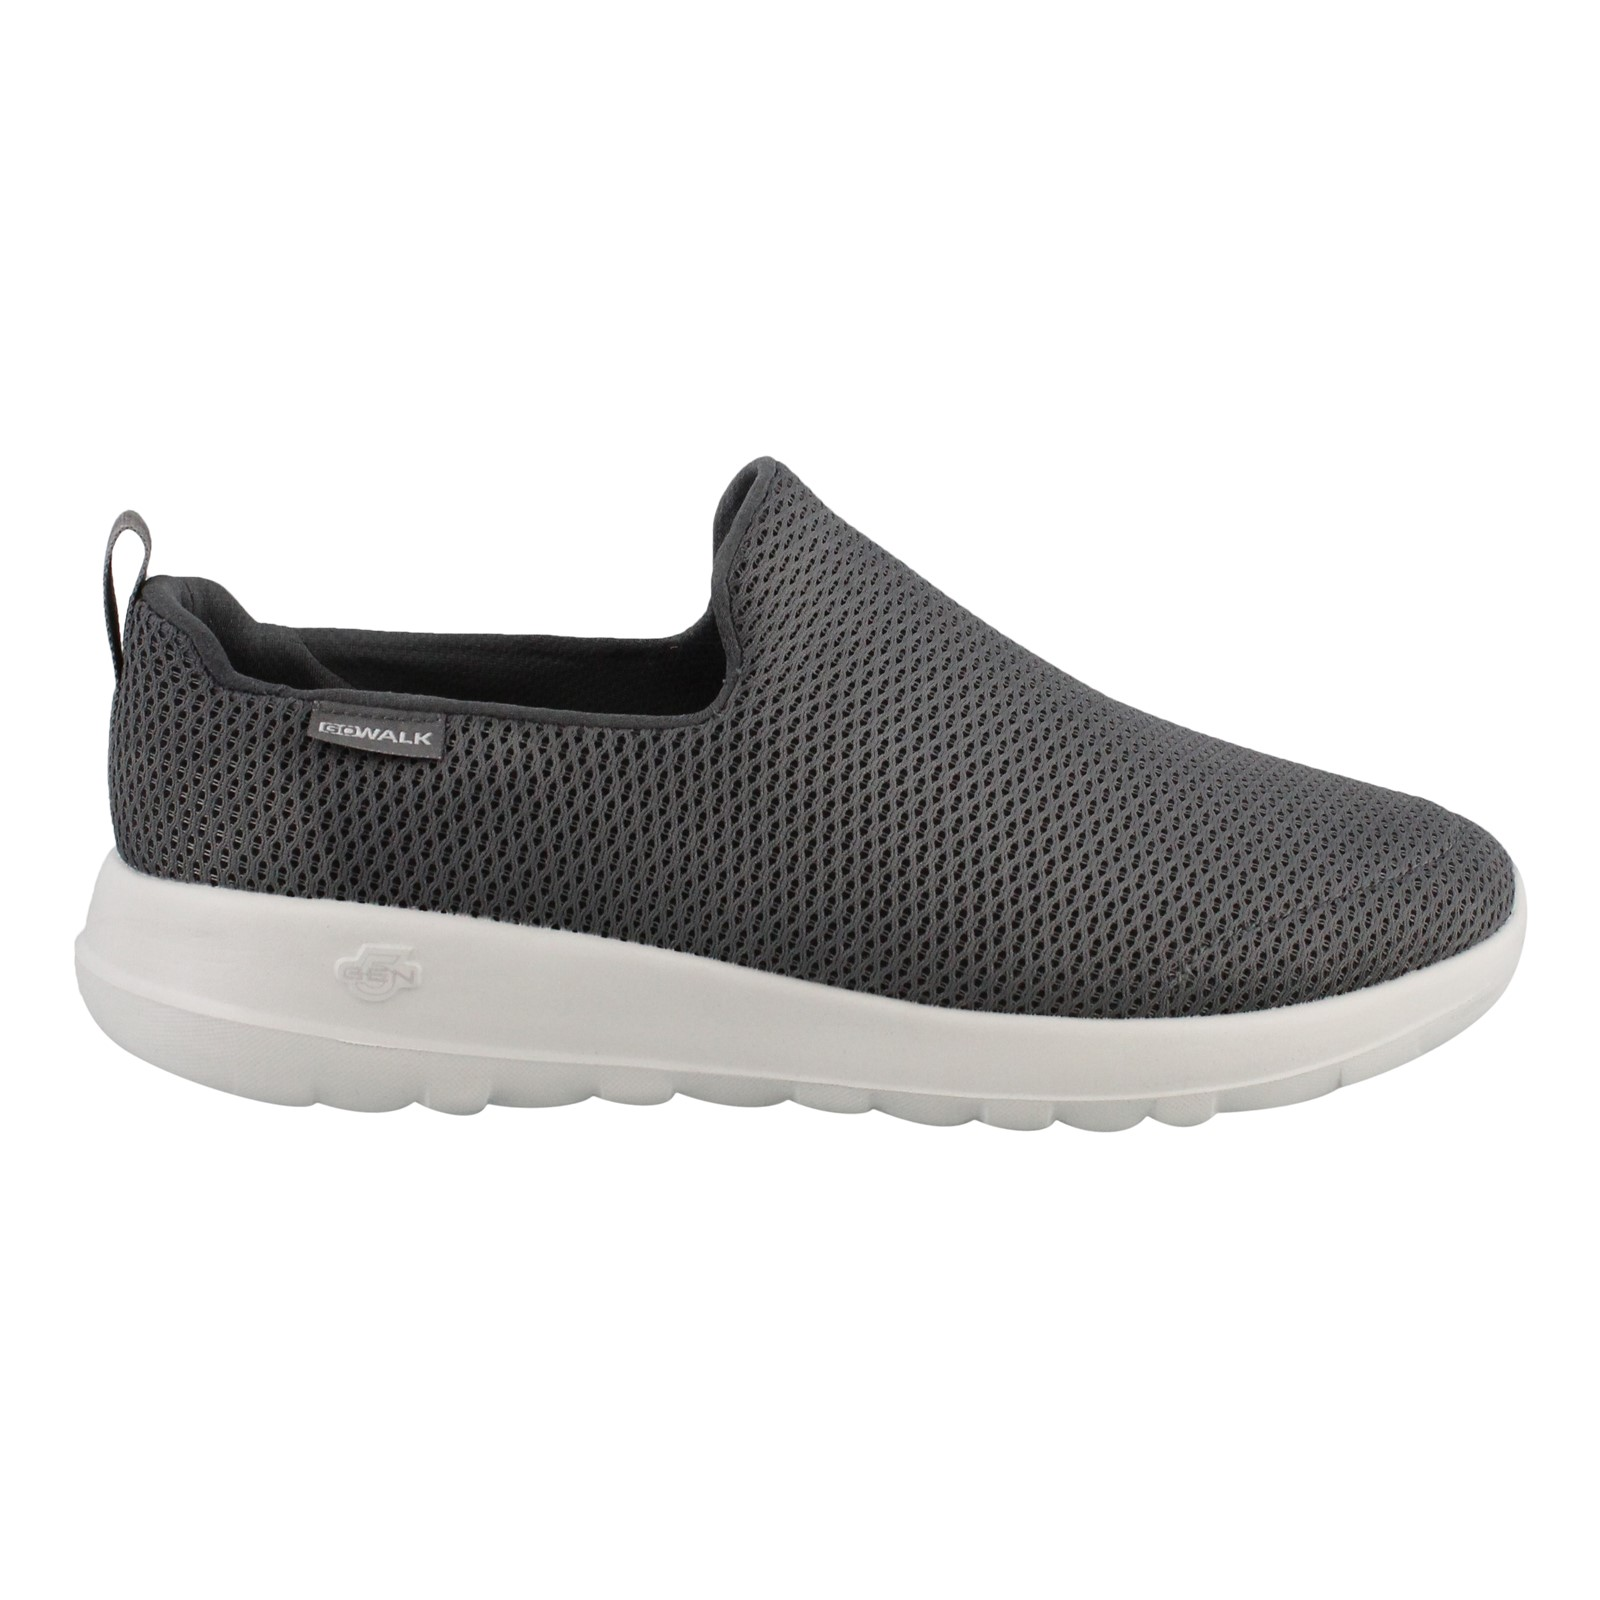 Men's Skechers Performance, Gowalk Max extra wide Slip on Shoes